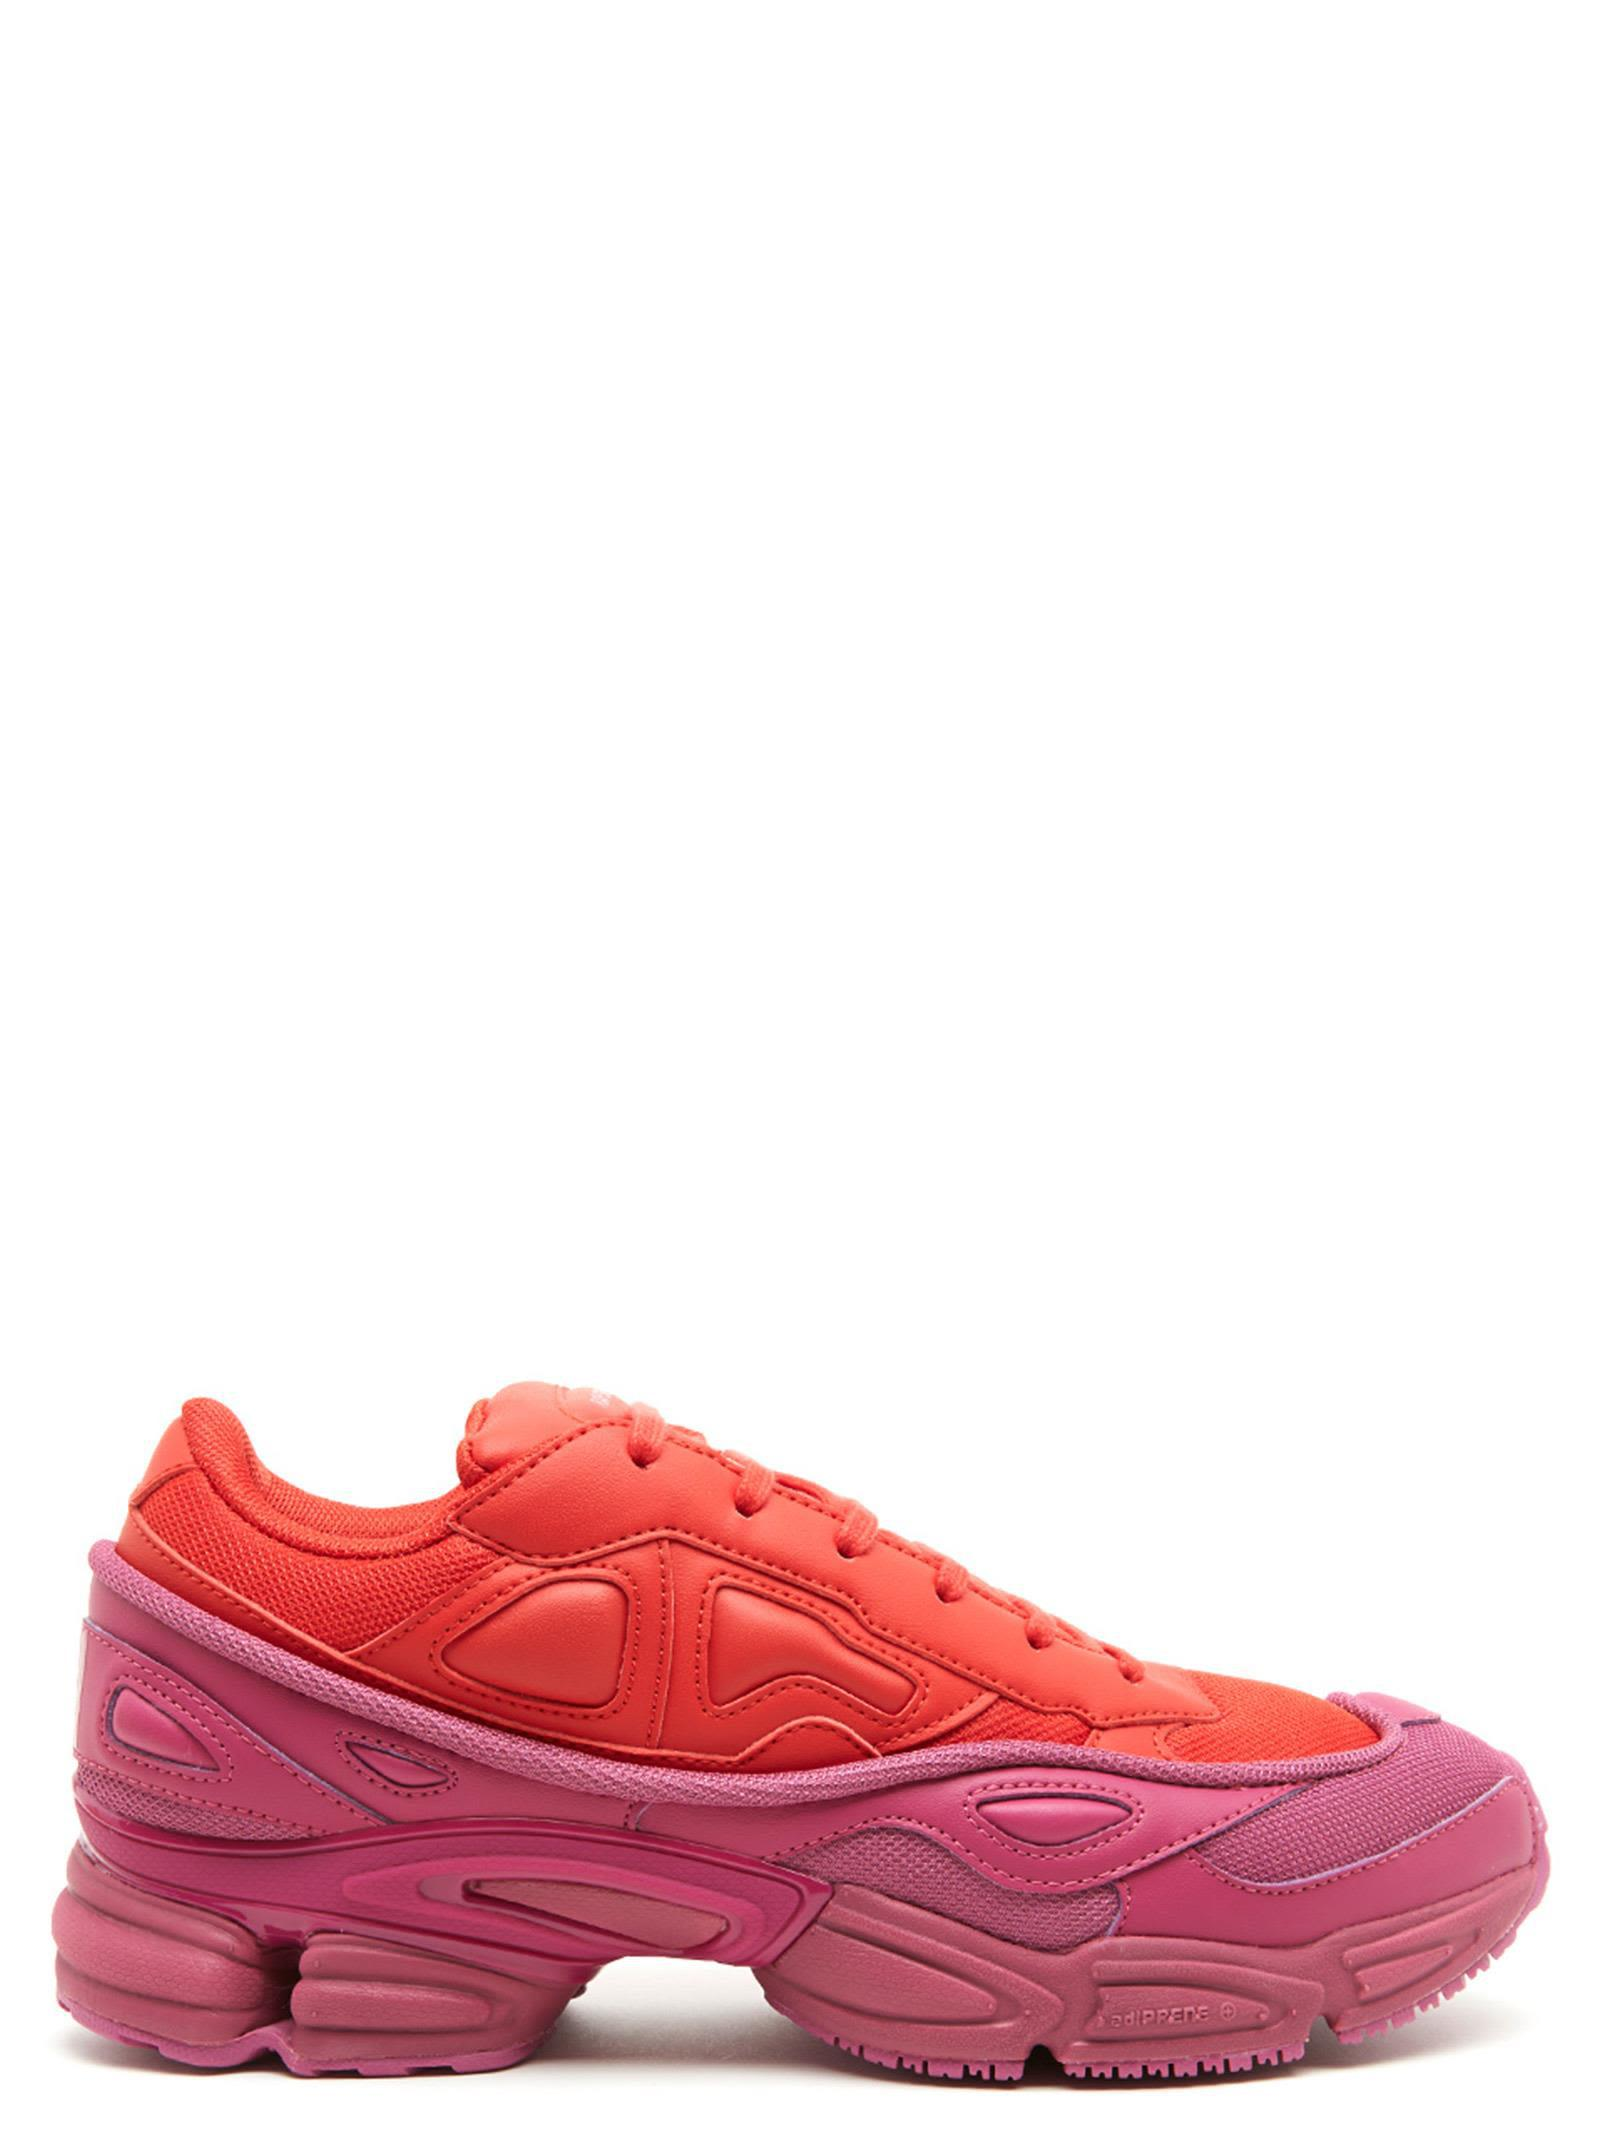 competitive price 0e857 1402b Adidas By Raf Simons Adidas X Raf Simons Mens Ozweego Sneakers In Red